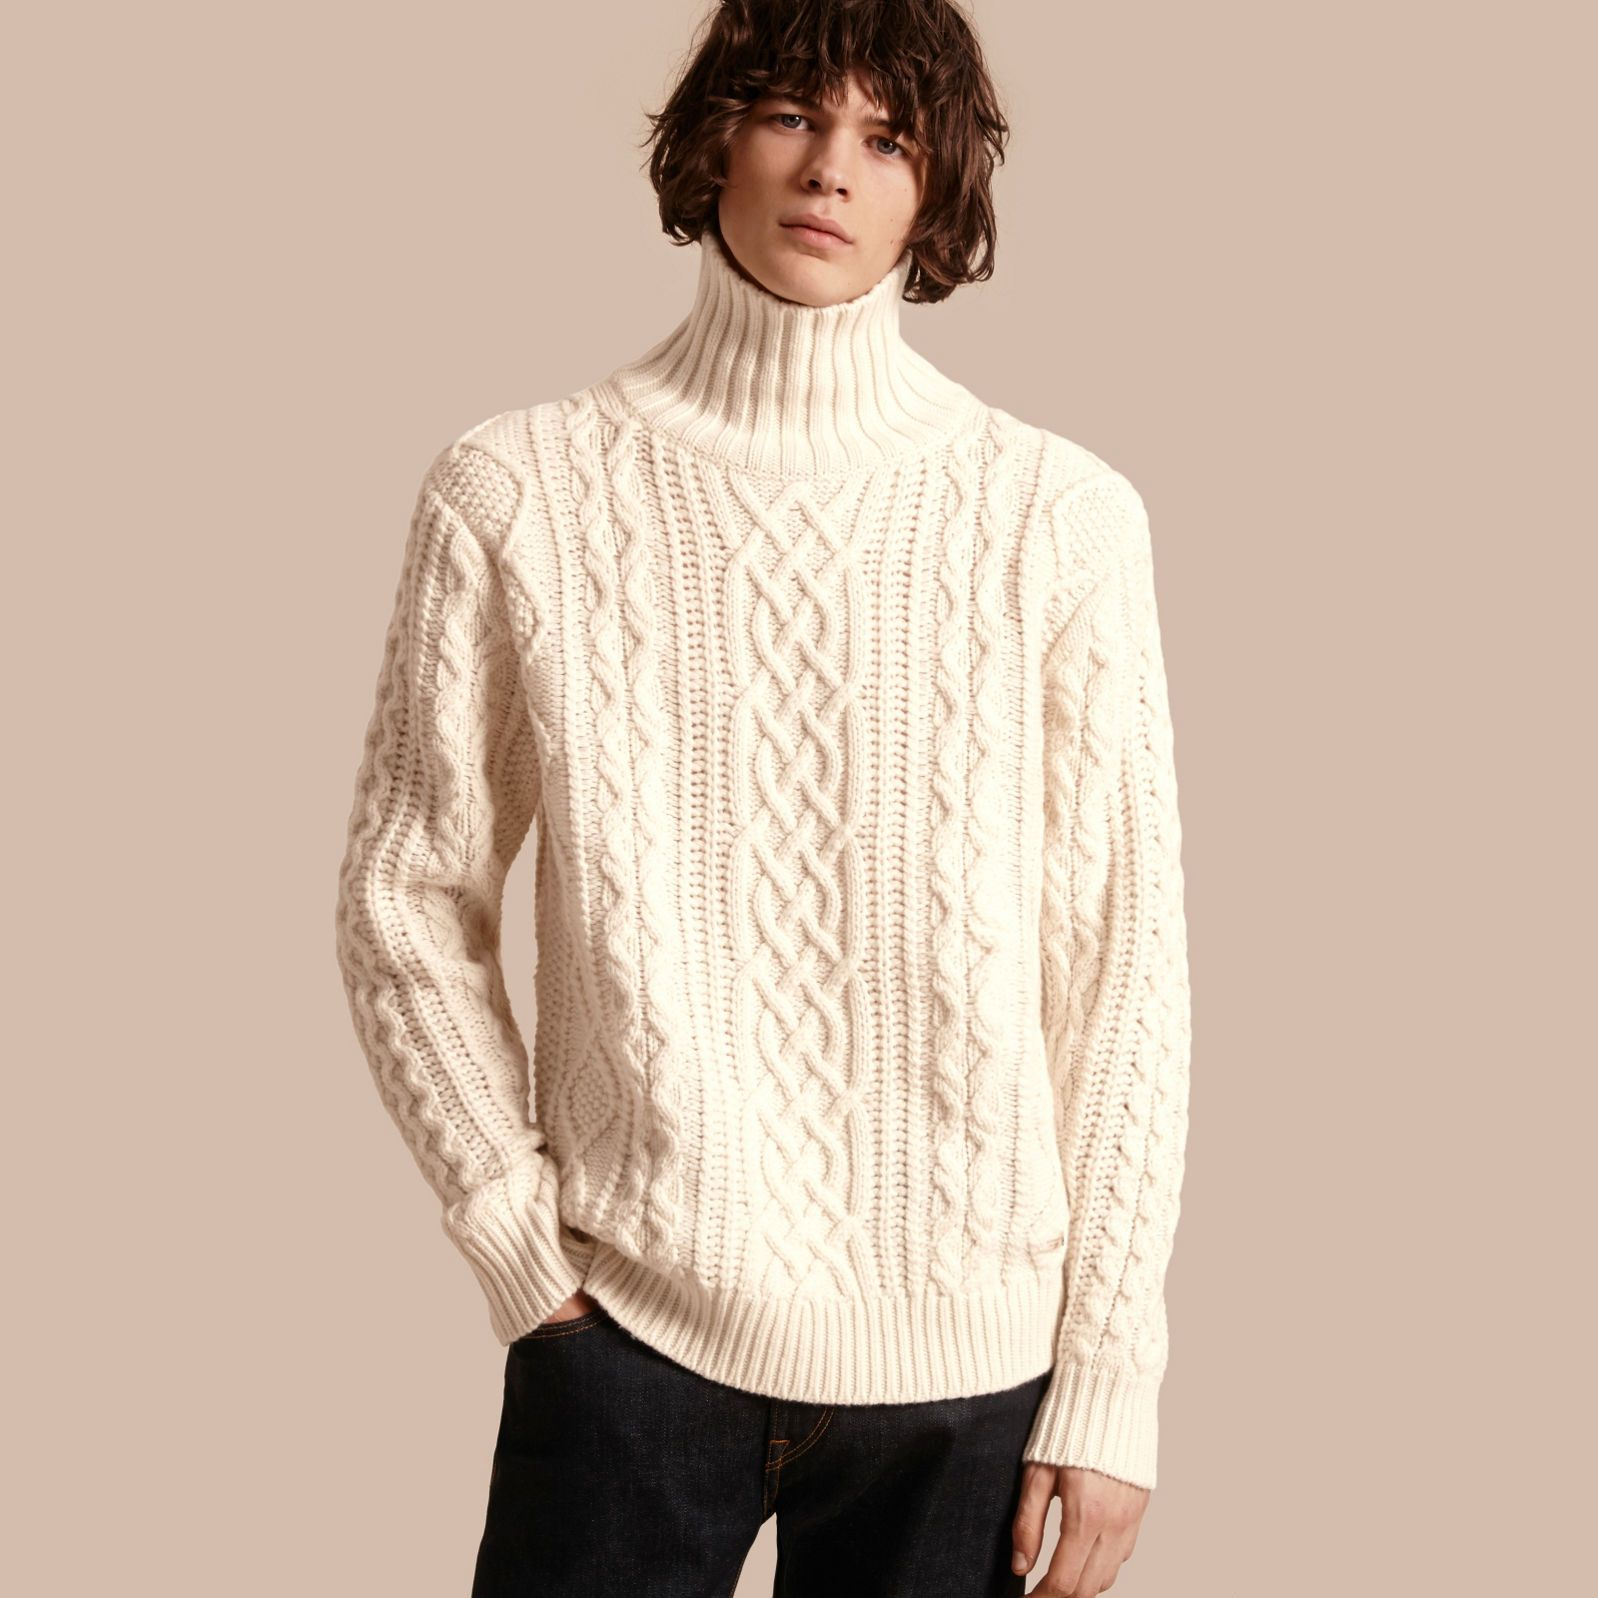 Men's Knitted Sweaters & Cardigans | Cable knitting and Slim chinos